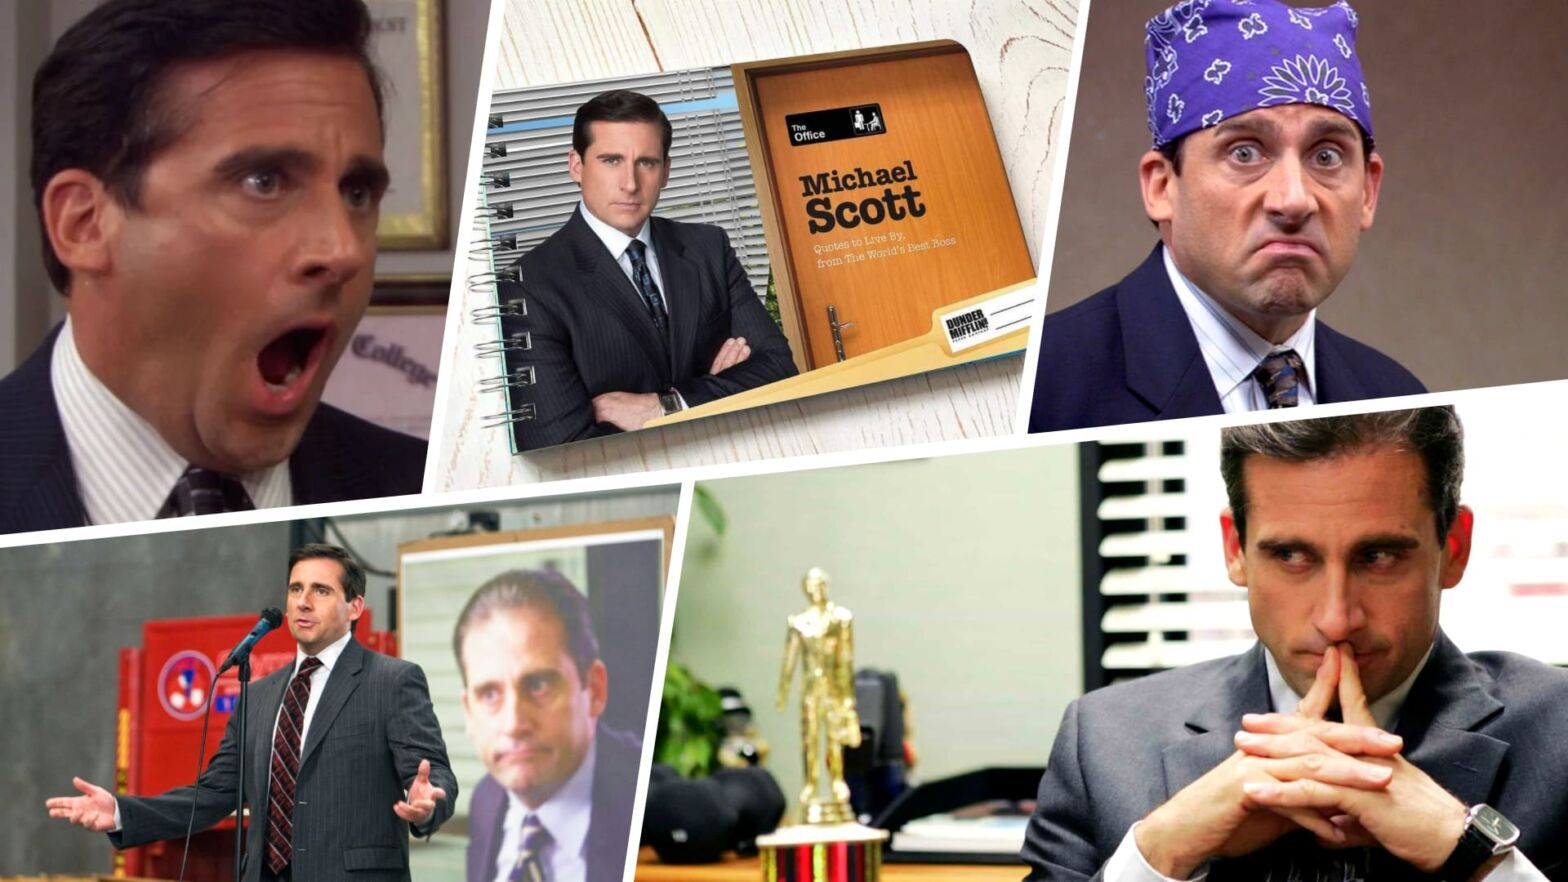 25 Best Michael Scott Quotes from The Office, Ranked - Featured